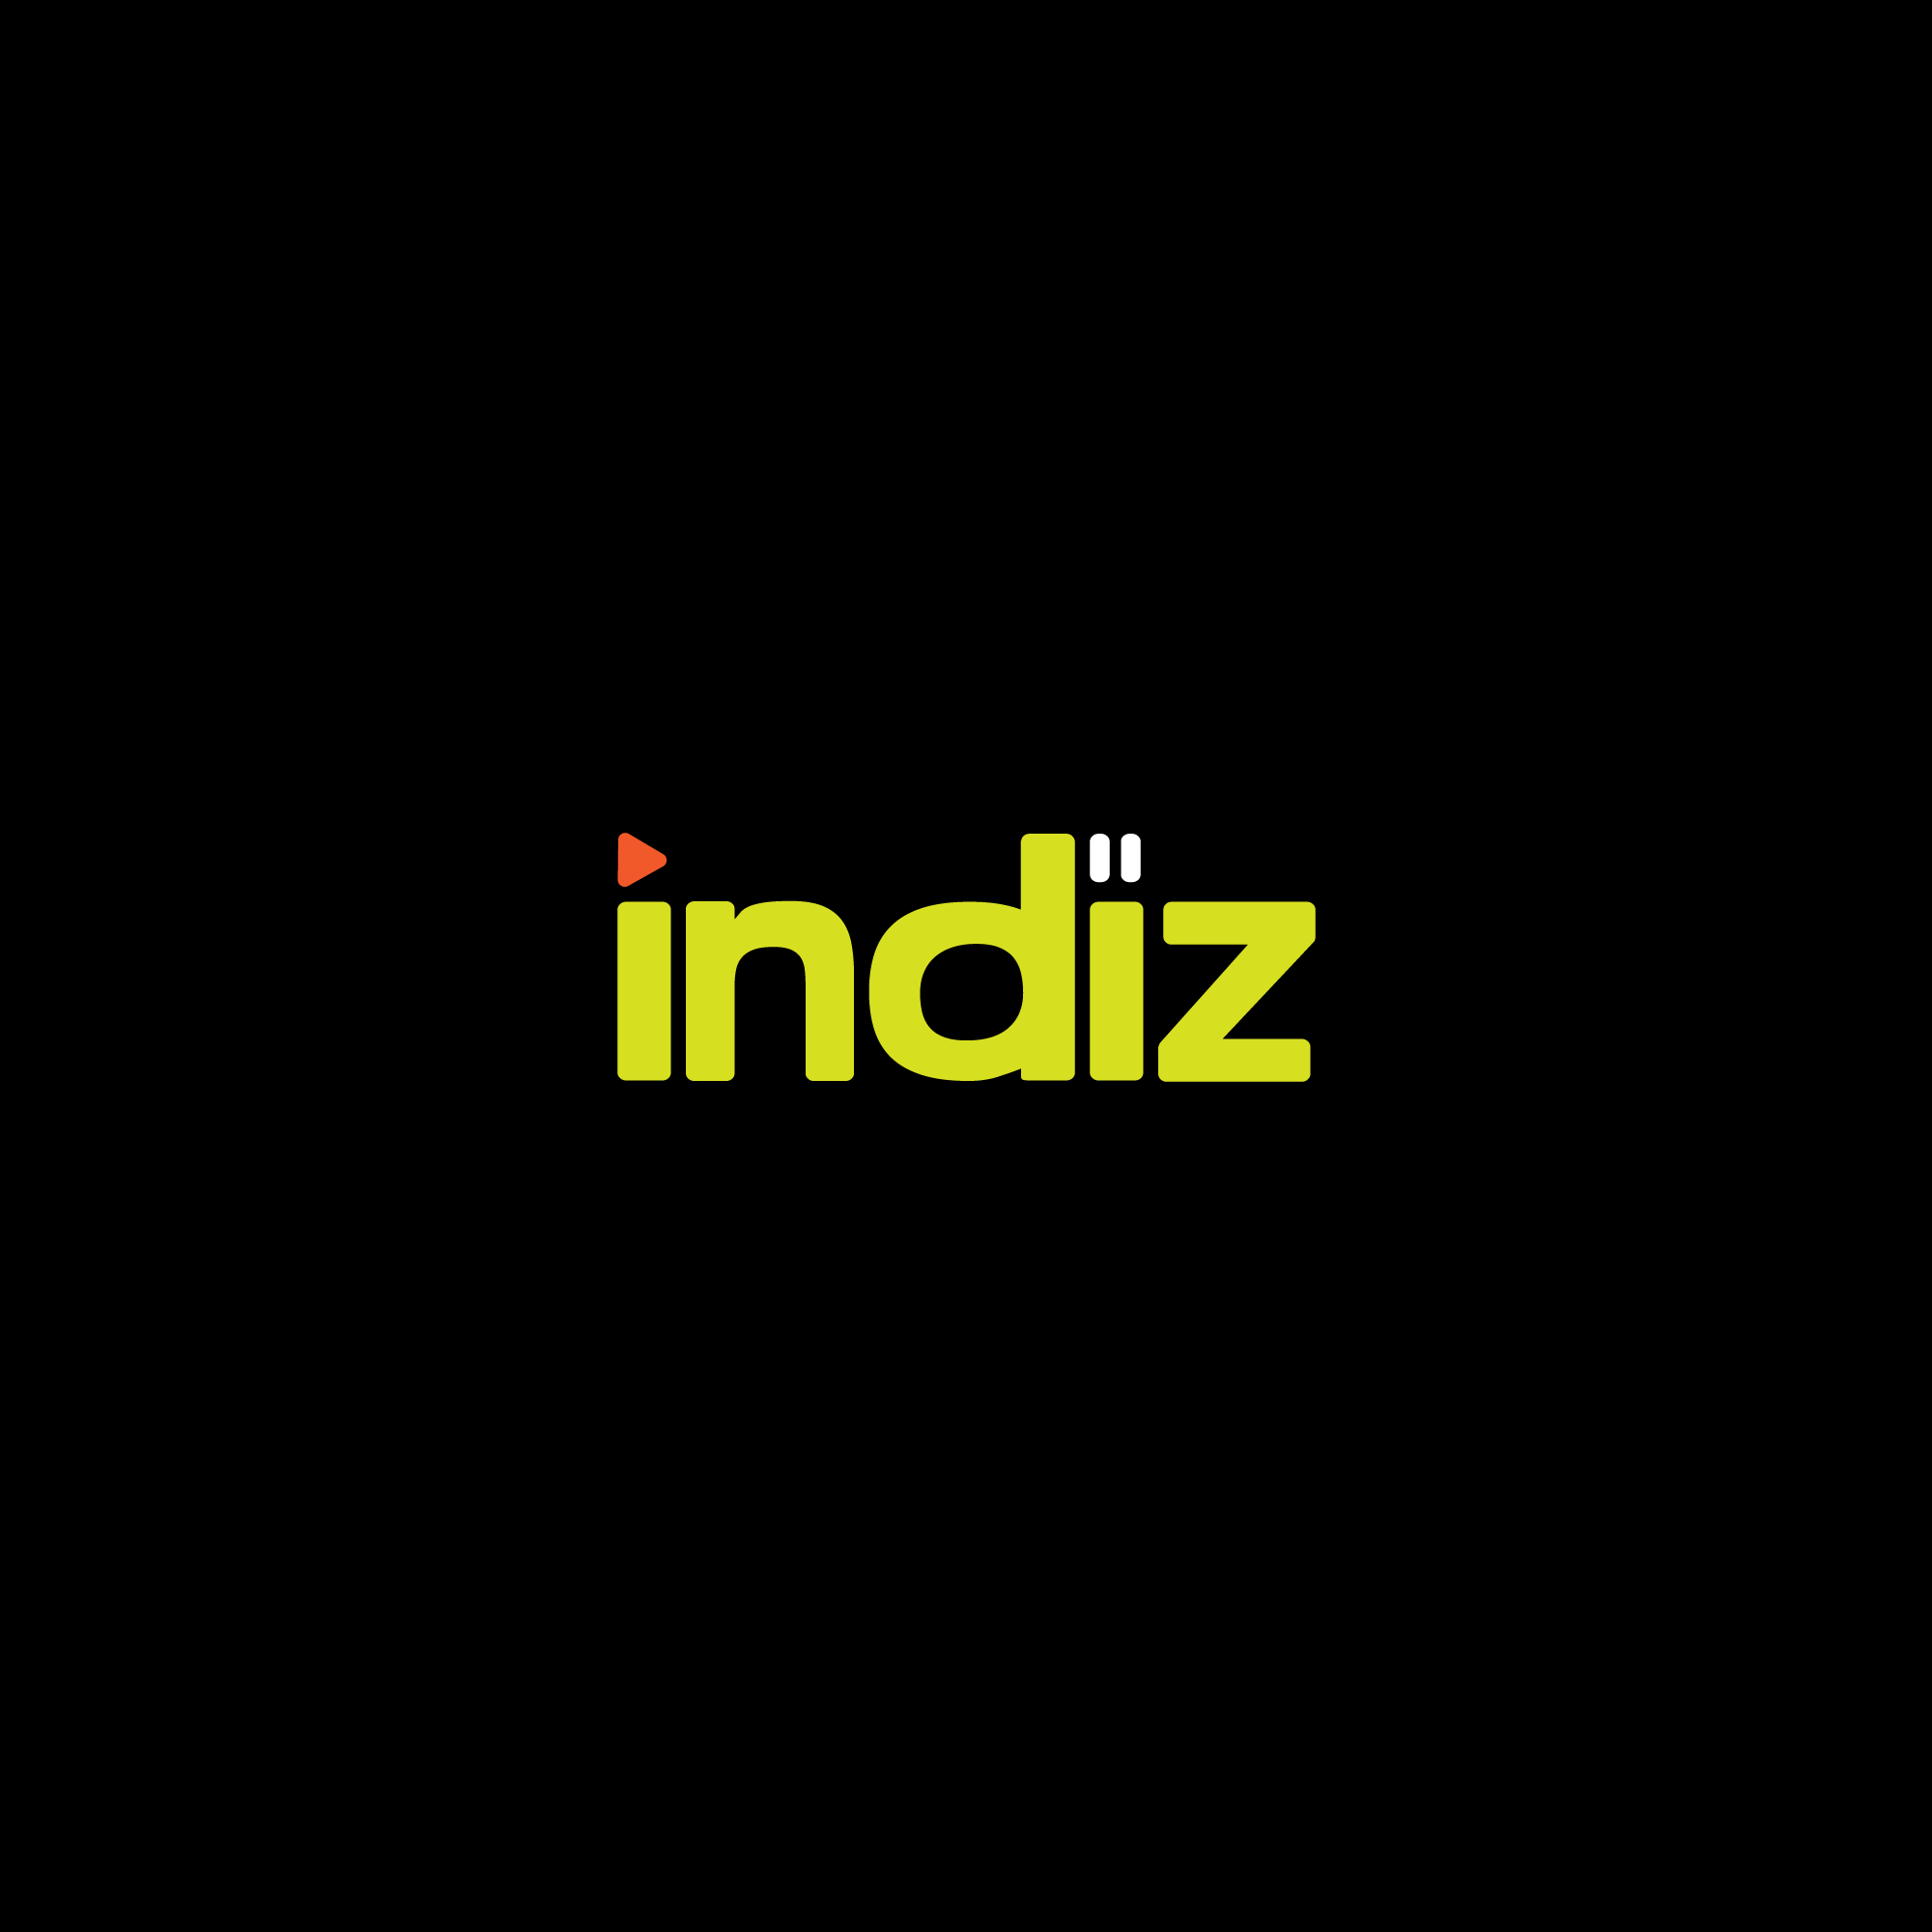 Logo Design by Mrs Suhartini - Entry No. 270 in the Logo Design Contest Fun Logo Design for Indiz.